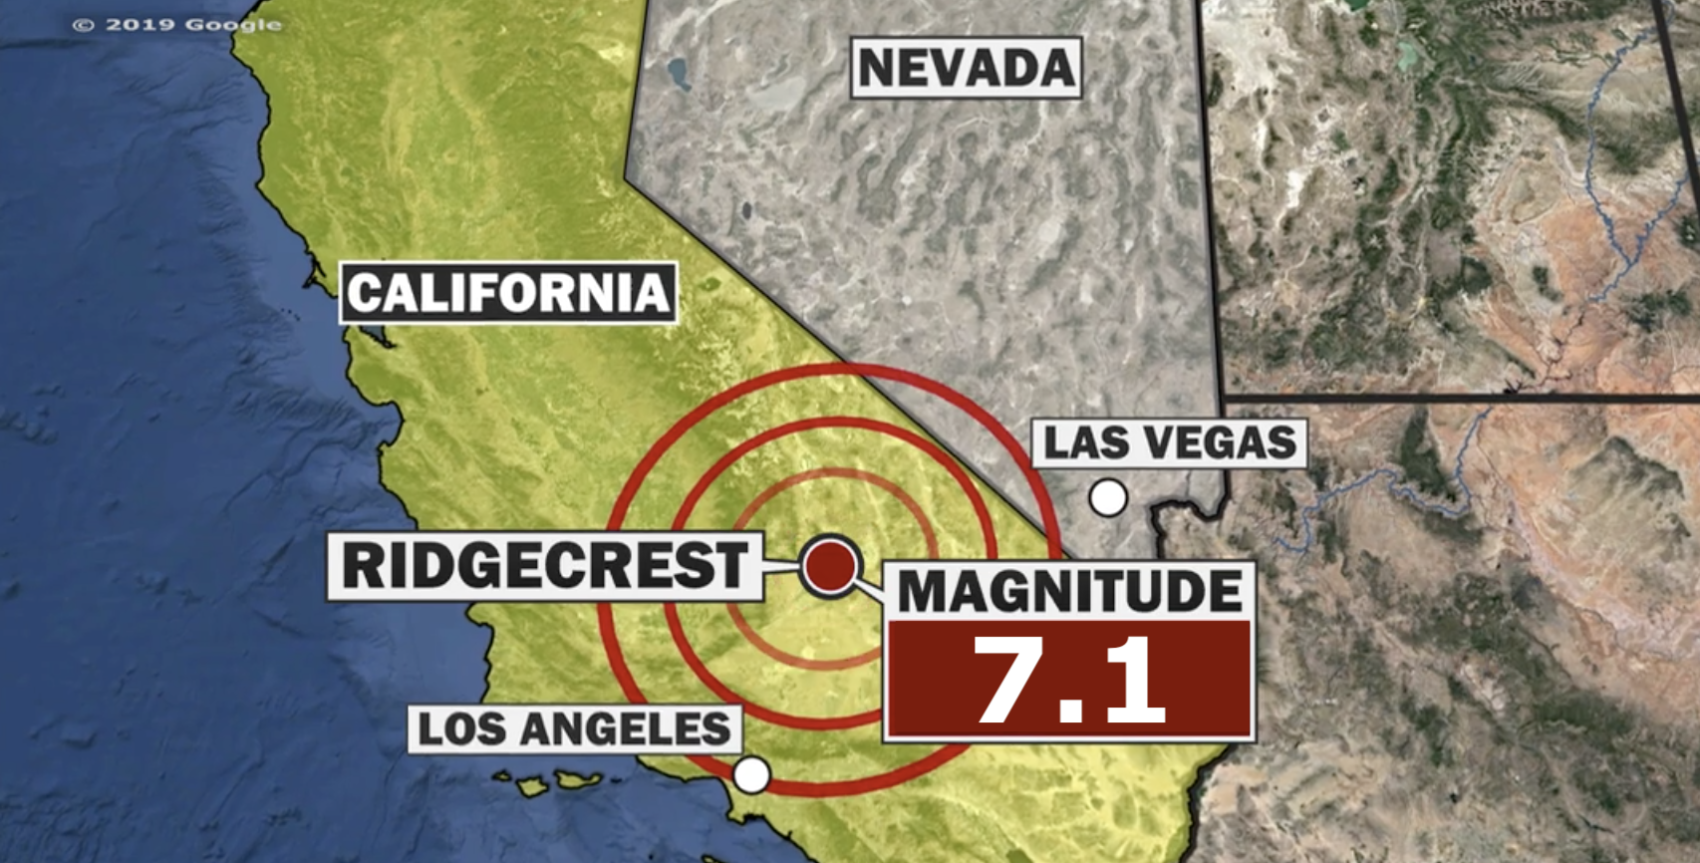 Large 7.1-Magnitude Earthquake Hits Southern California ... on southern california fault line map, ca drought map, ca landslides map, fairfield ca map, ca volcano map, ca universal studios map, ca road map, current california earthquakes map, ca fault line map, ca oil spill map, ca power outage map, ca freeway map, ca wildfires map, new madrid fault damage map, ca city map, ca regions map, ca fire map, ca airport map, southern baja california map, ca seismic zone map,